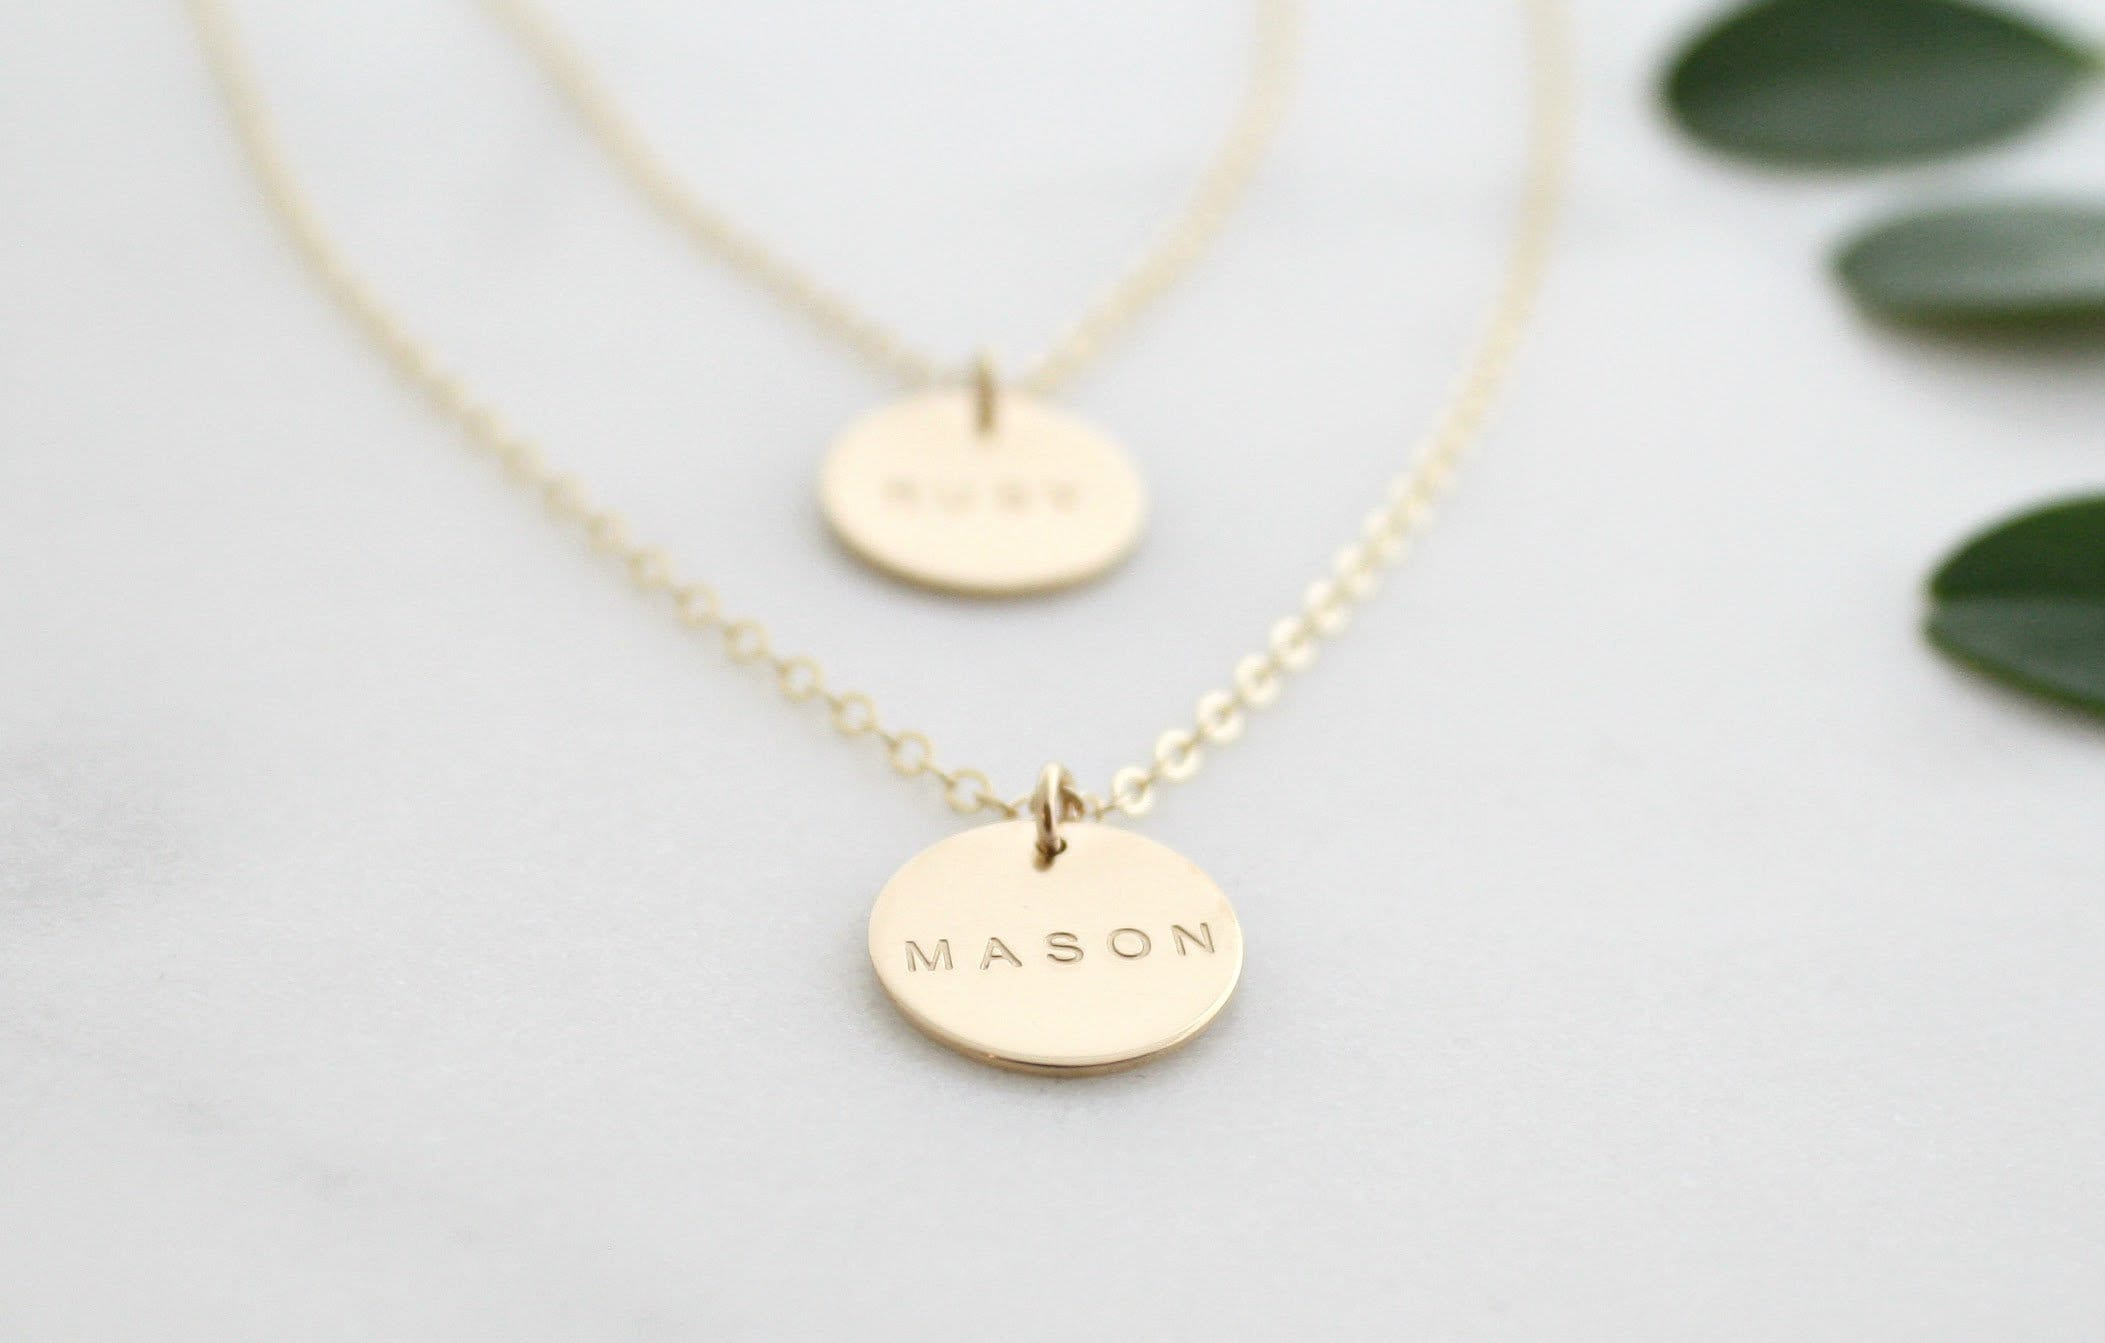 Circled Brass Necklace Anniversary Gift 14 carat gold filled necklace Dangle Necklace Geometric Necklace Stylish Necklace-Women fashion